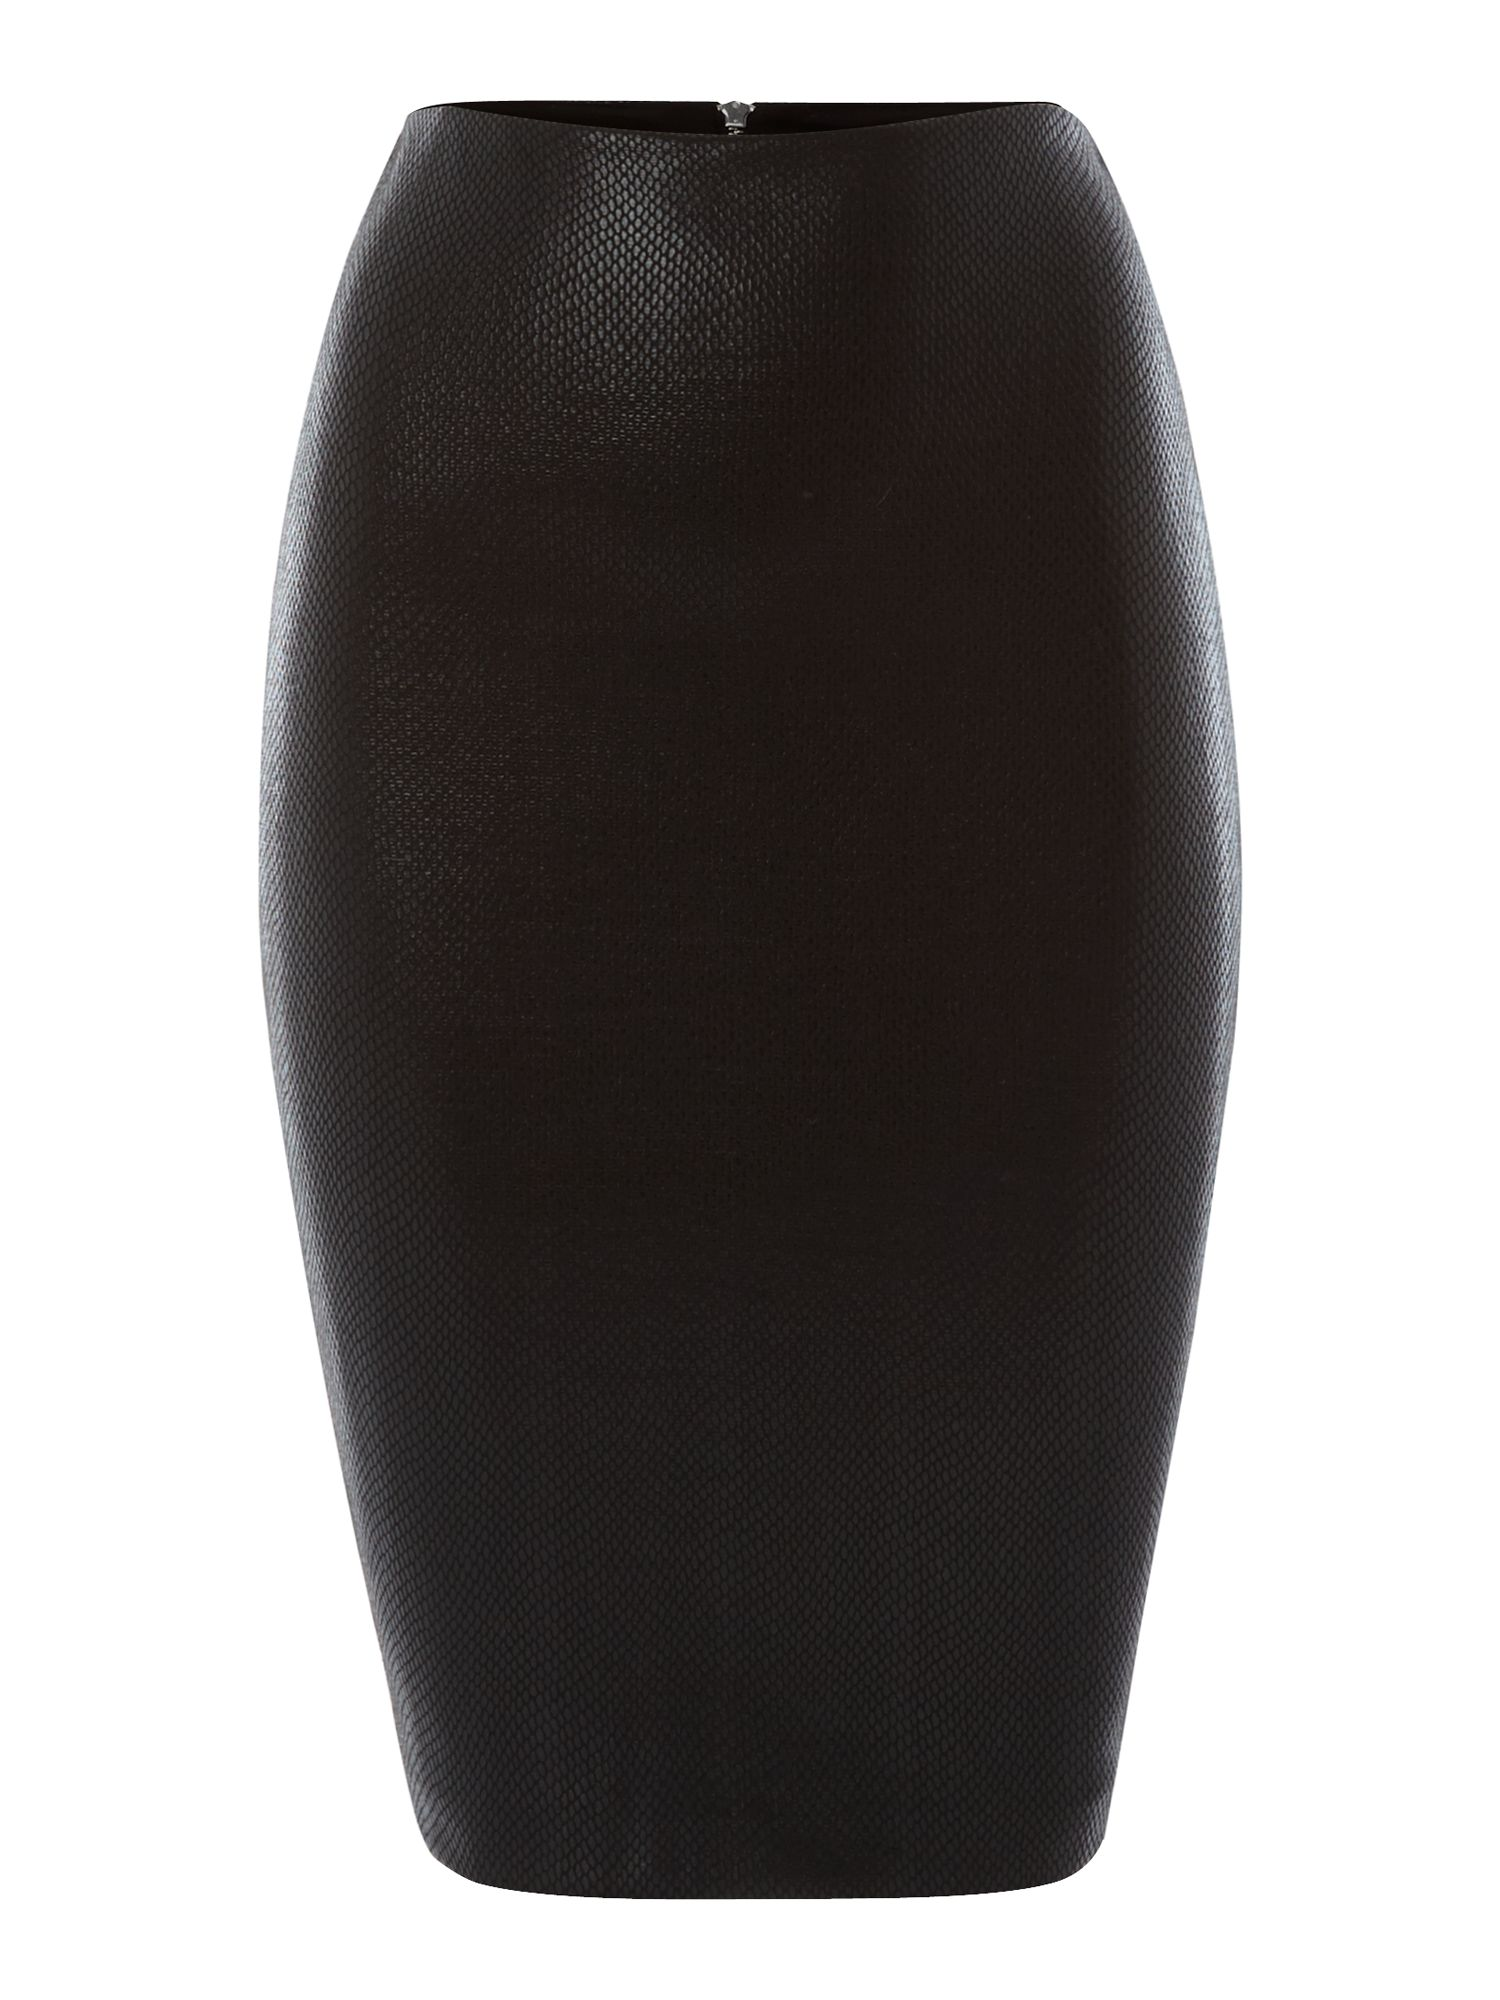 Luxe Pencil Skirt